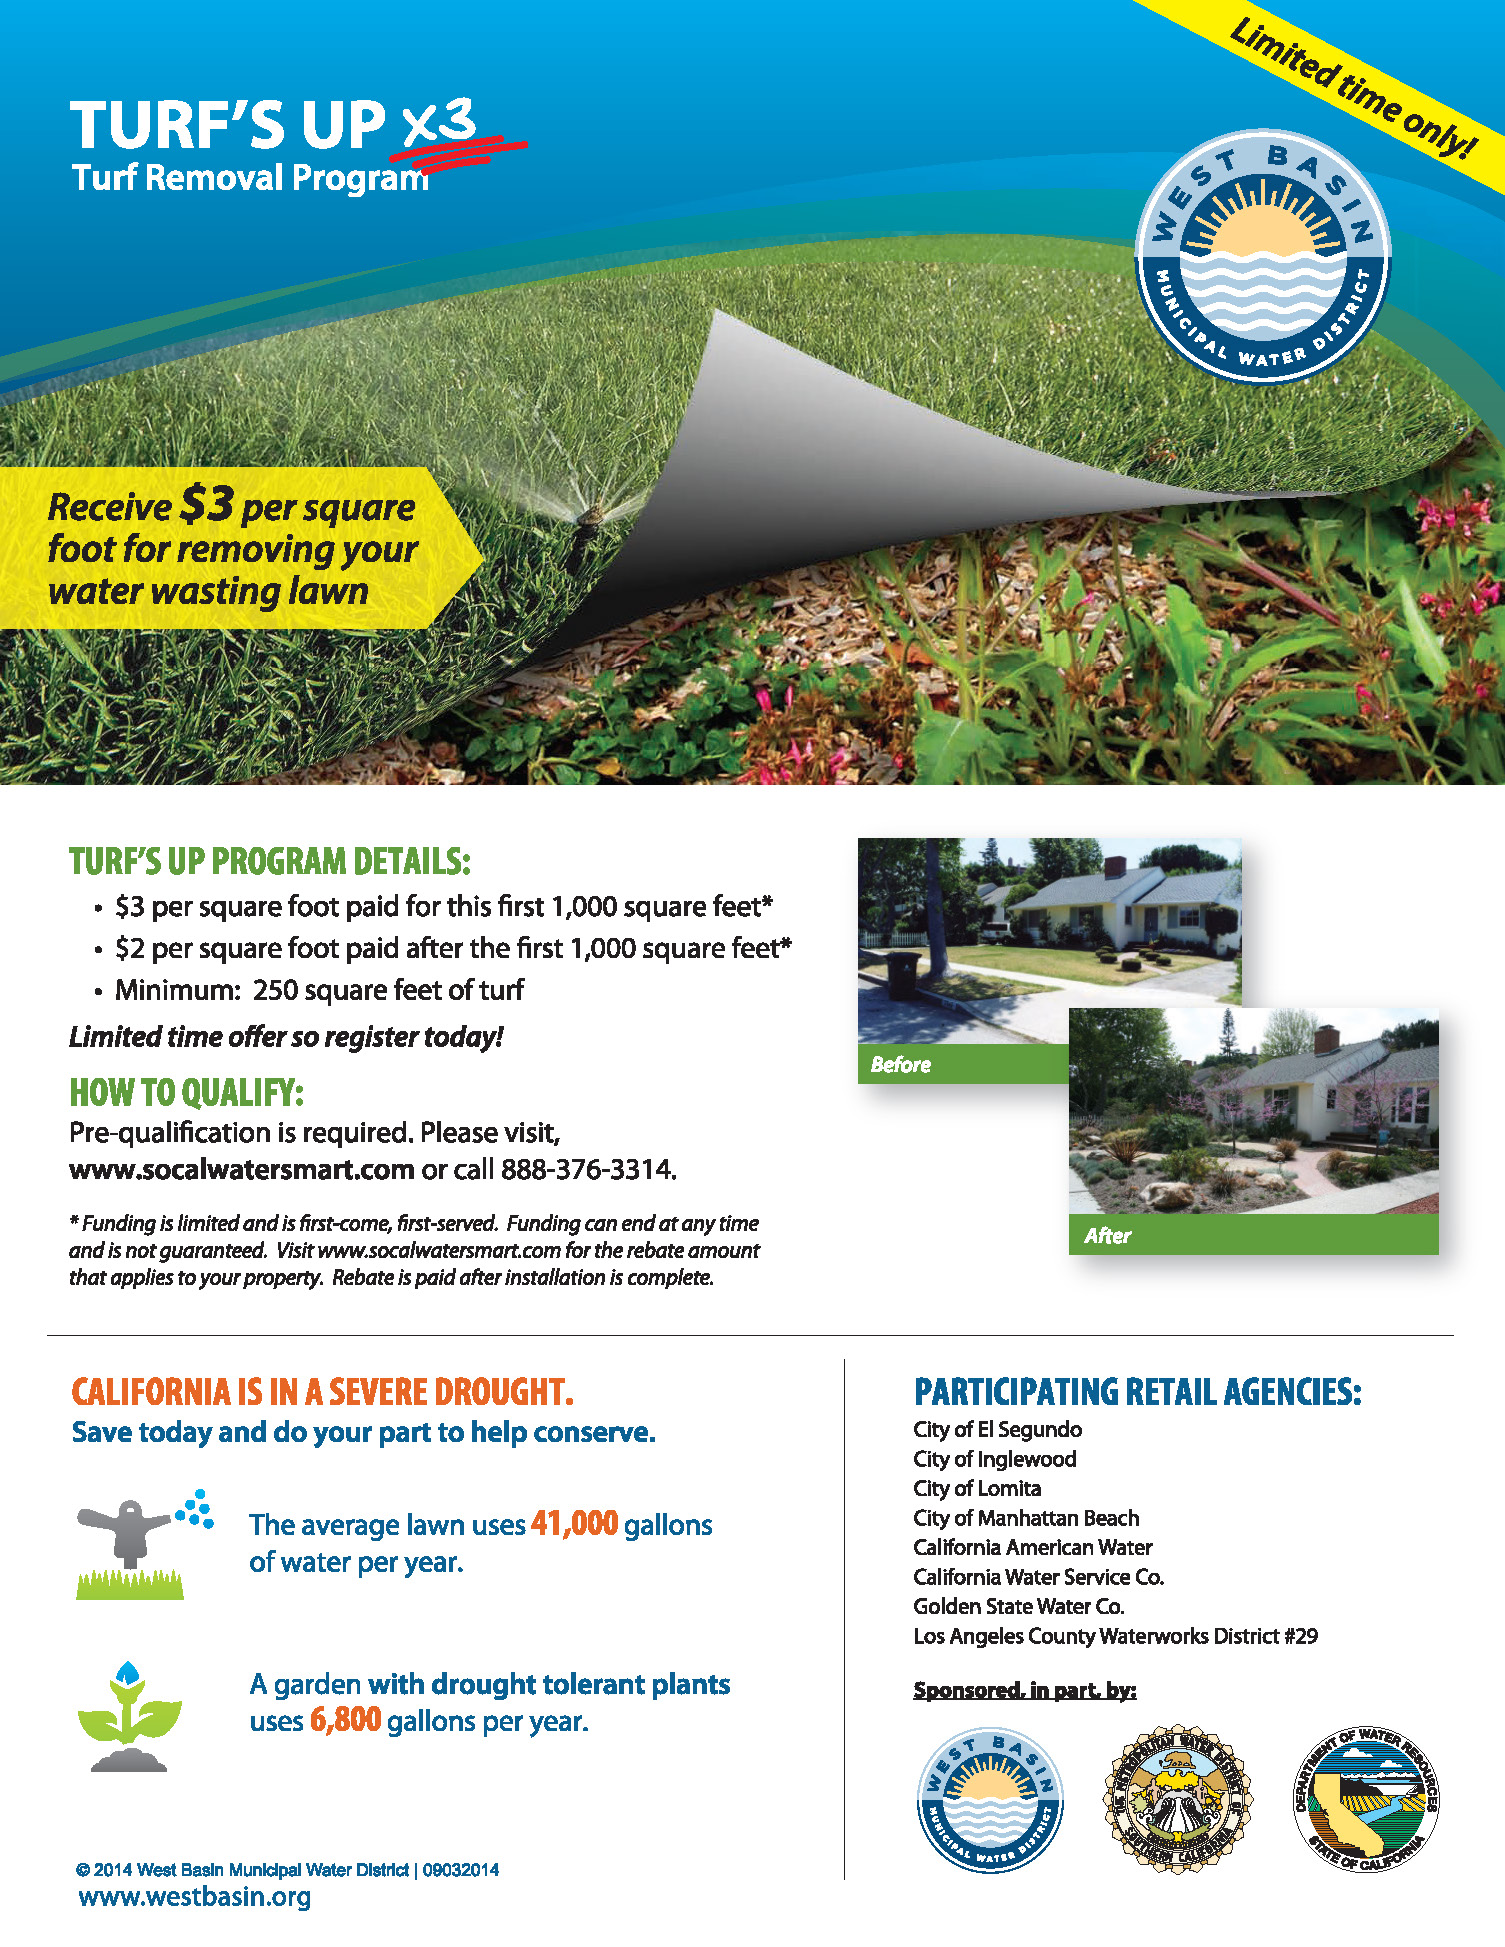 TurfsUpTImes3 Flyer Sept2014